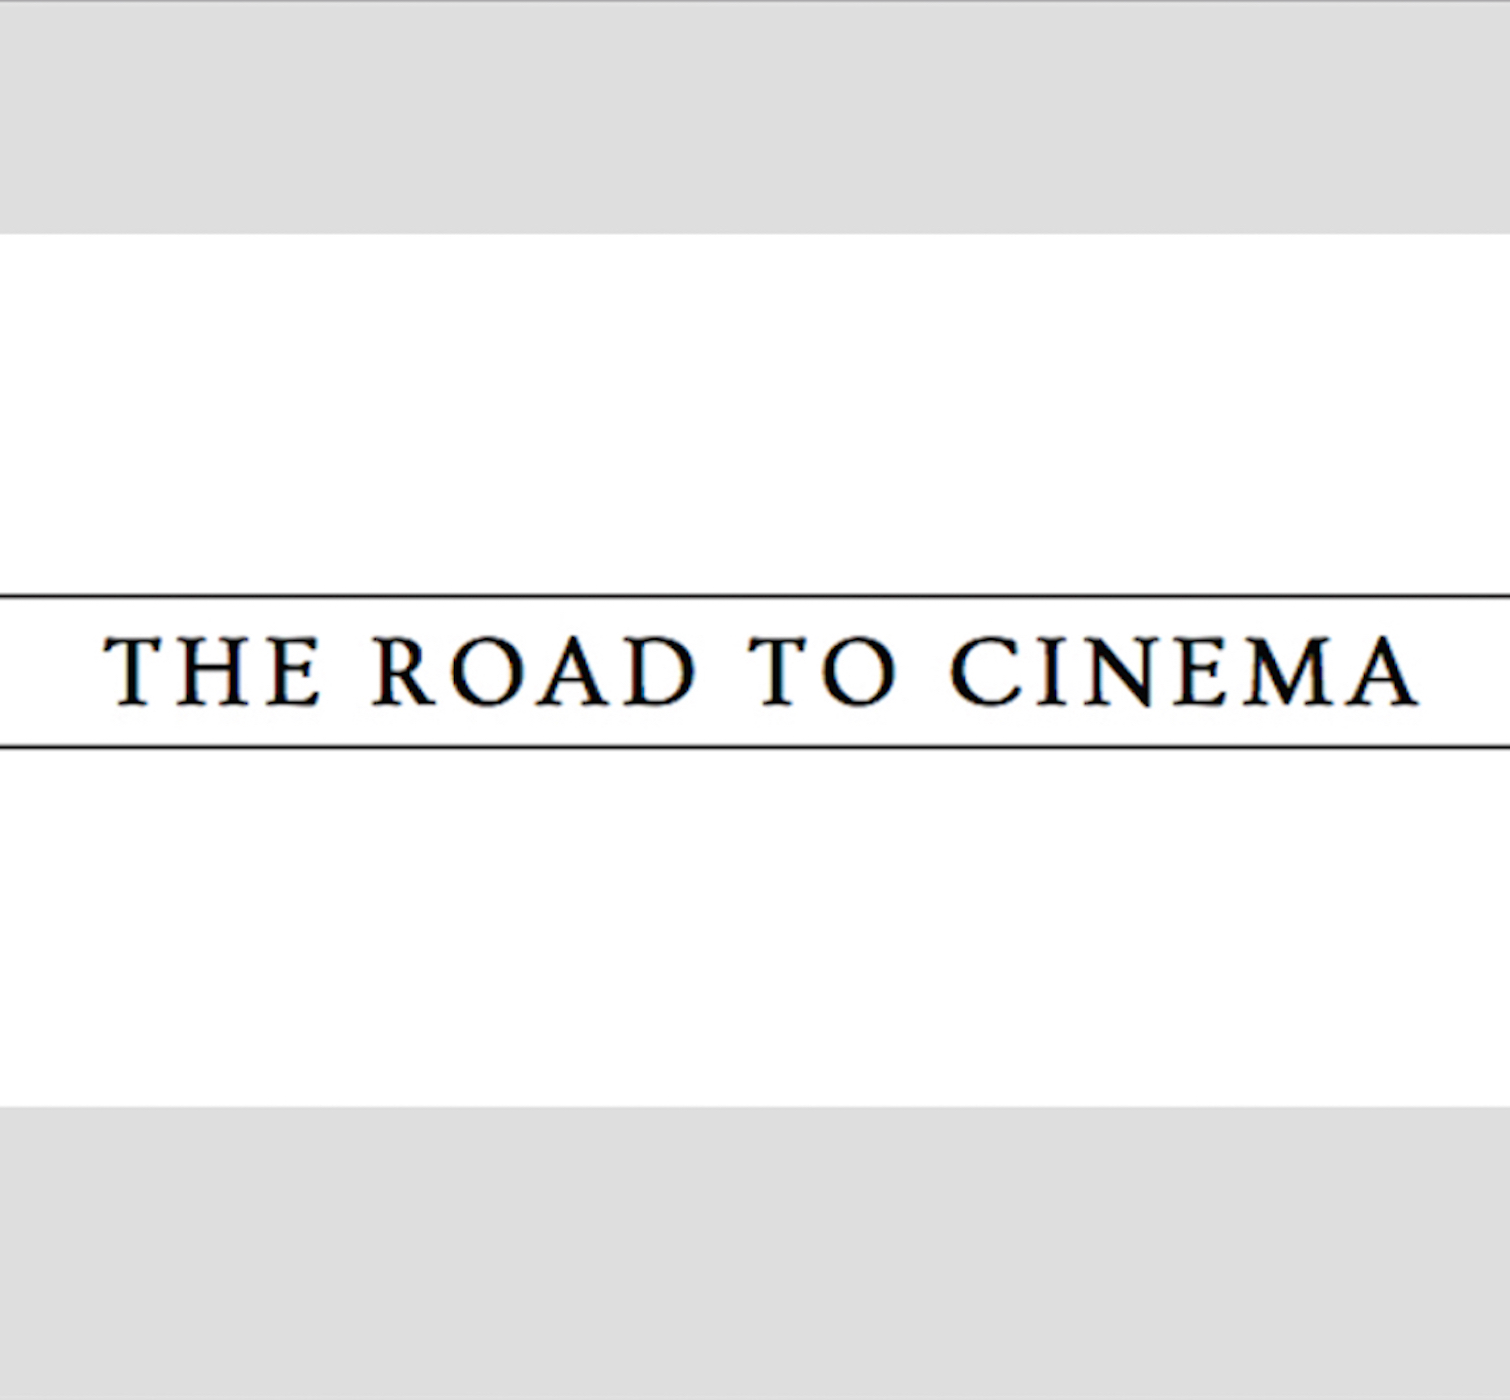 The Road to Cinema Podcast: Filmmaking Wisdom from Directors - Screenwriters - Editors - Producers and Actors!